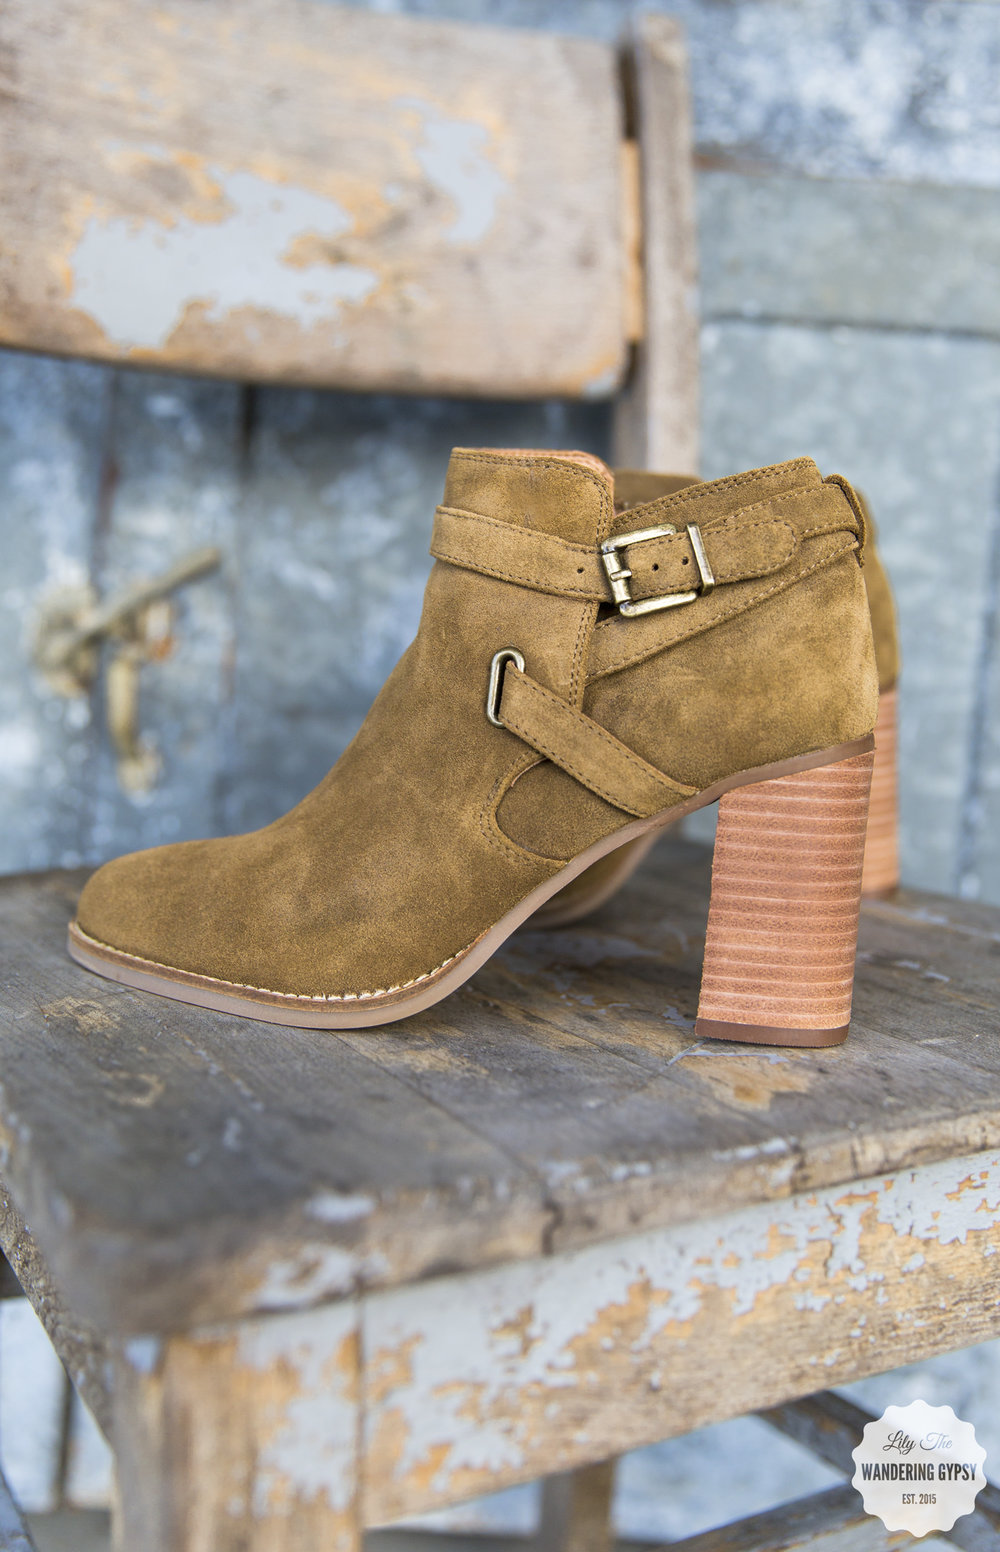 #MyDSW - love these booties!